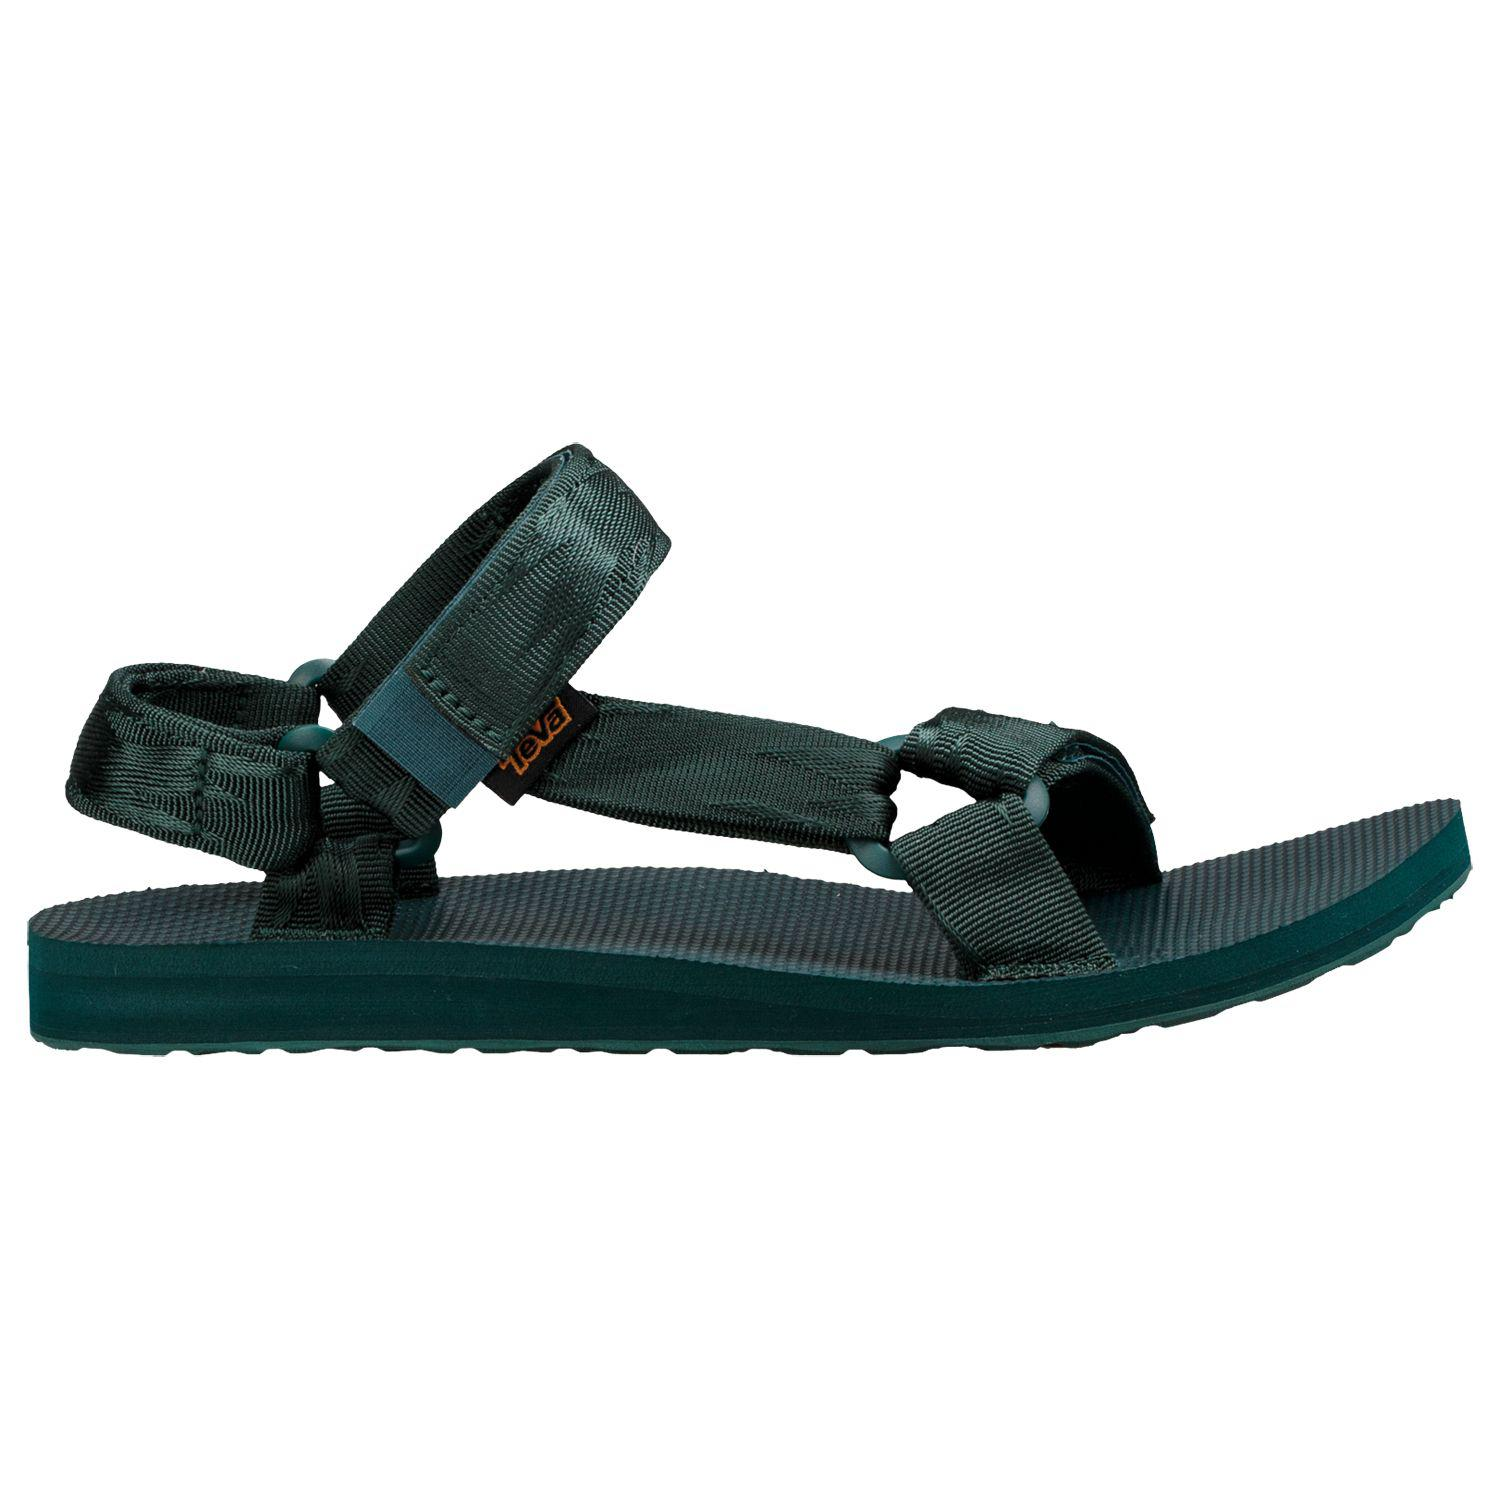 78154e79c Teva Original Sandals in Green for Men - Lyst